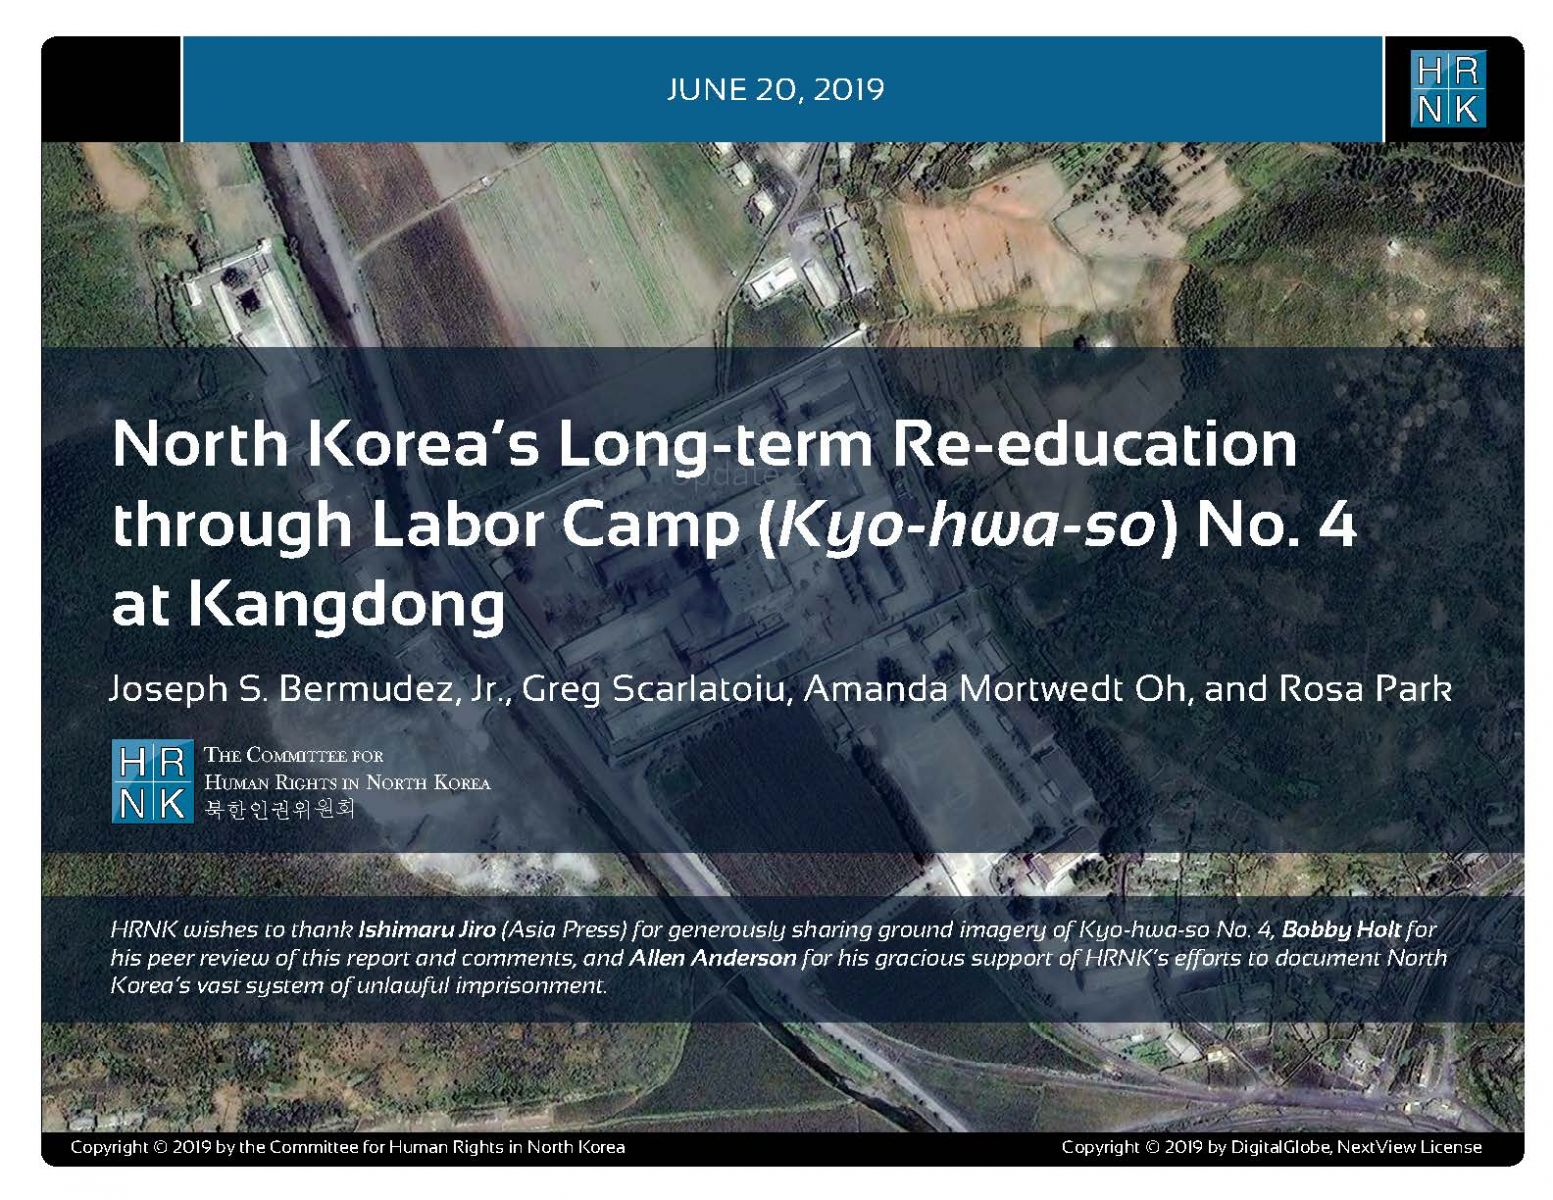 North Korea's Long-term Re-education through Labor Camp (Kyo-hwa-so) No. 4 at Kangdong